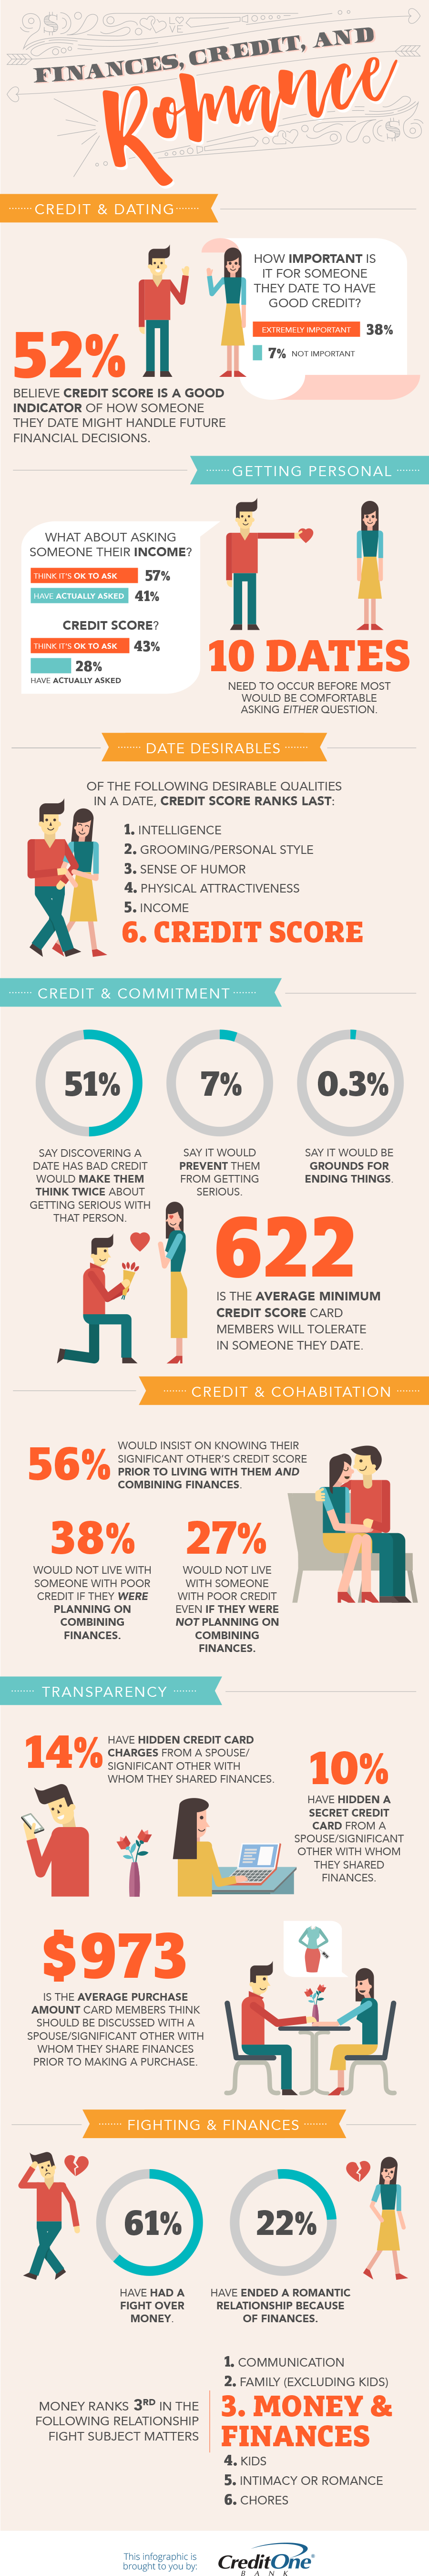 Finances, Credit and Romance Infographic